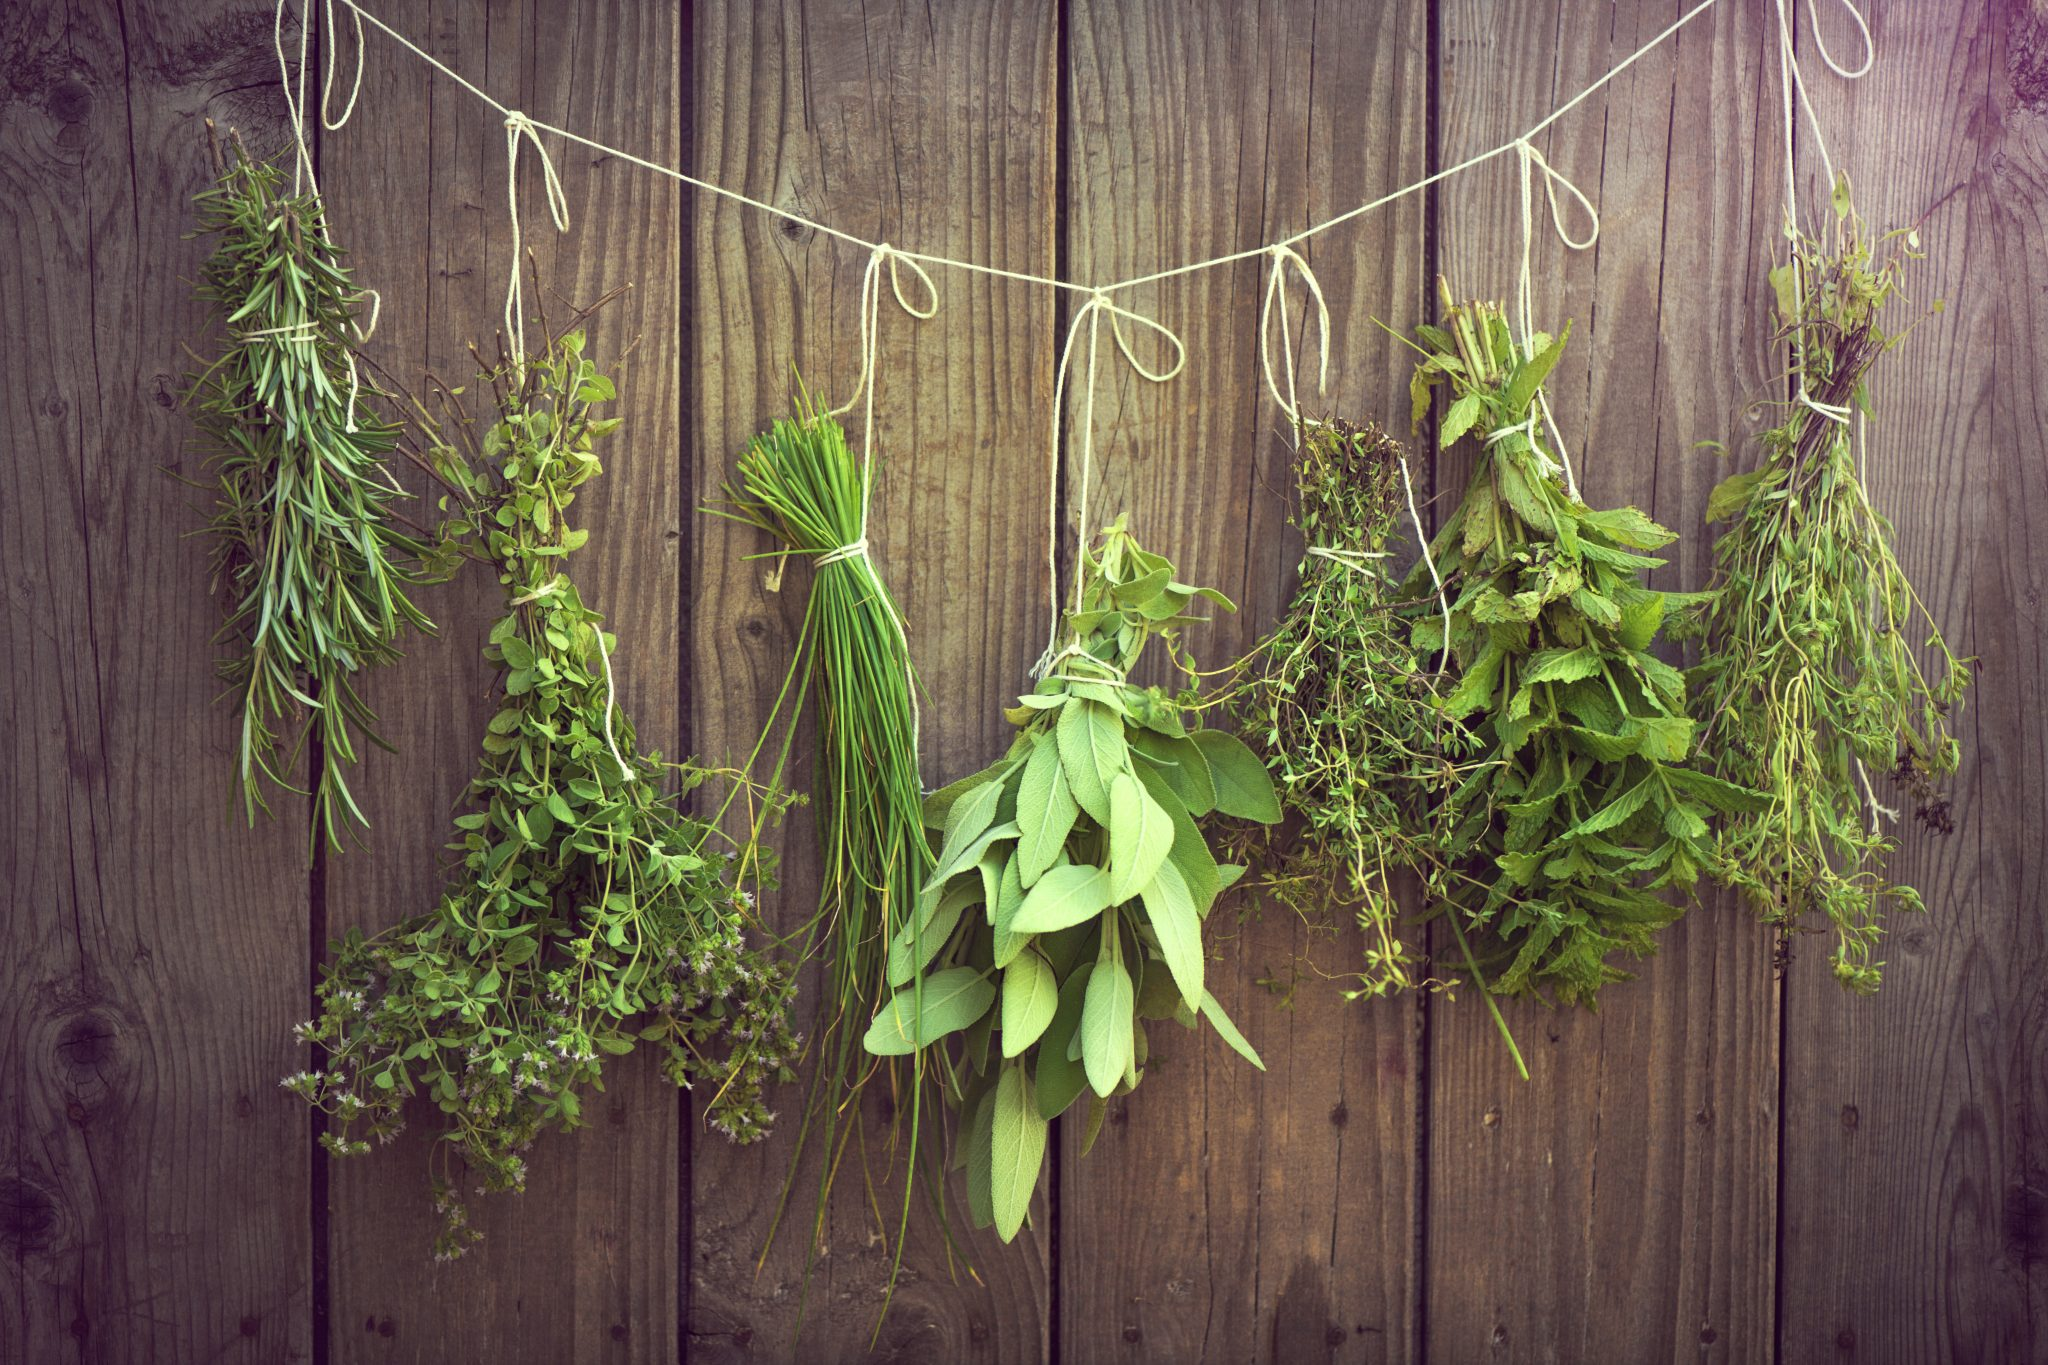 Herb bunches hanging on rope against wooden fence